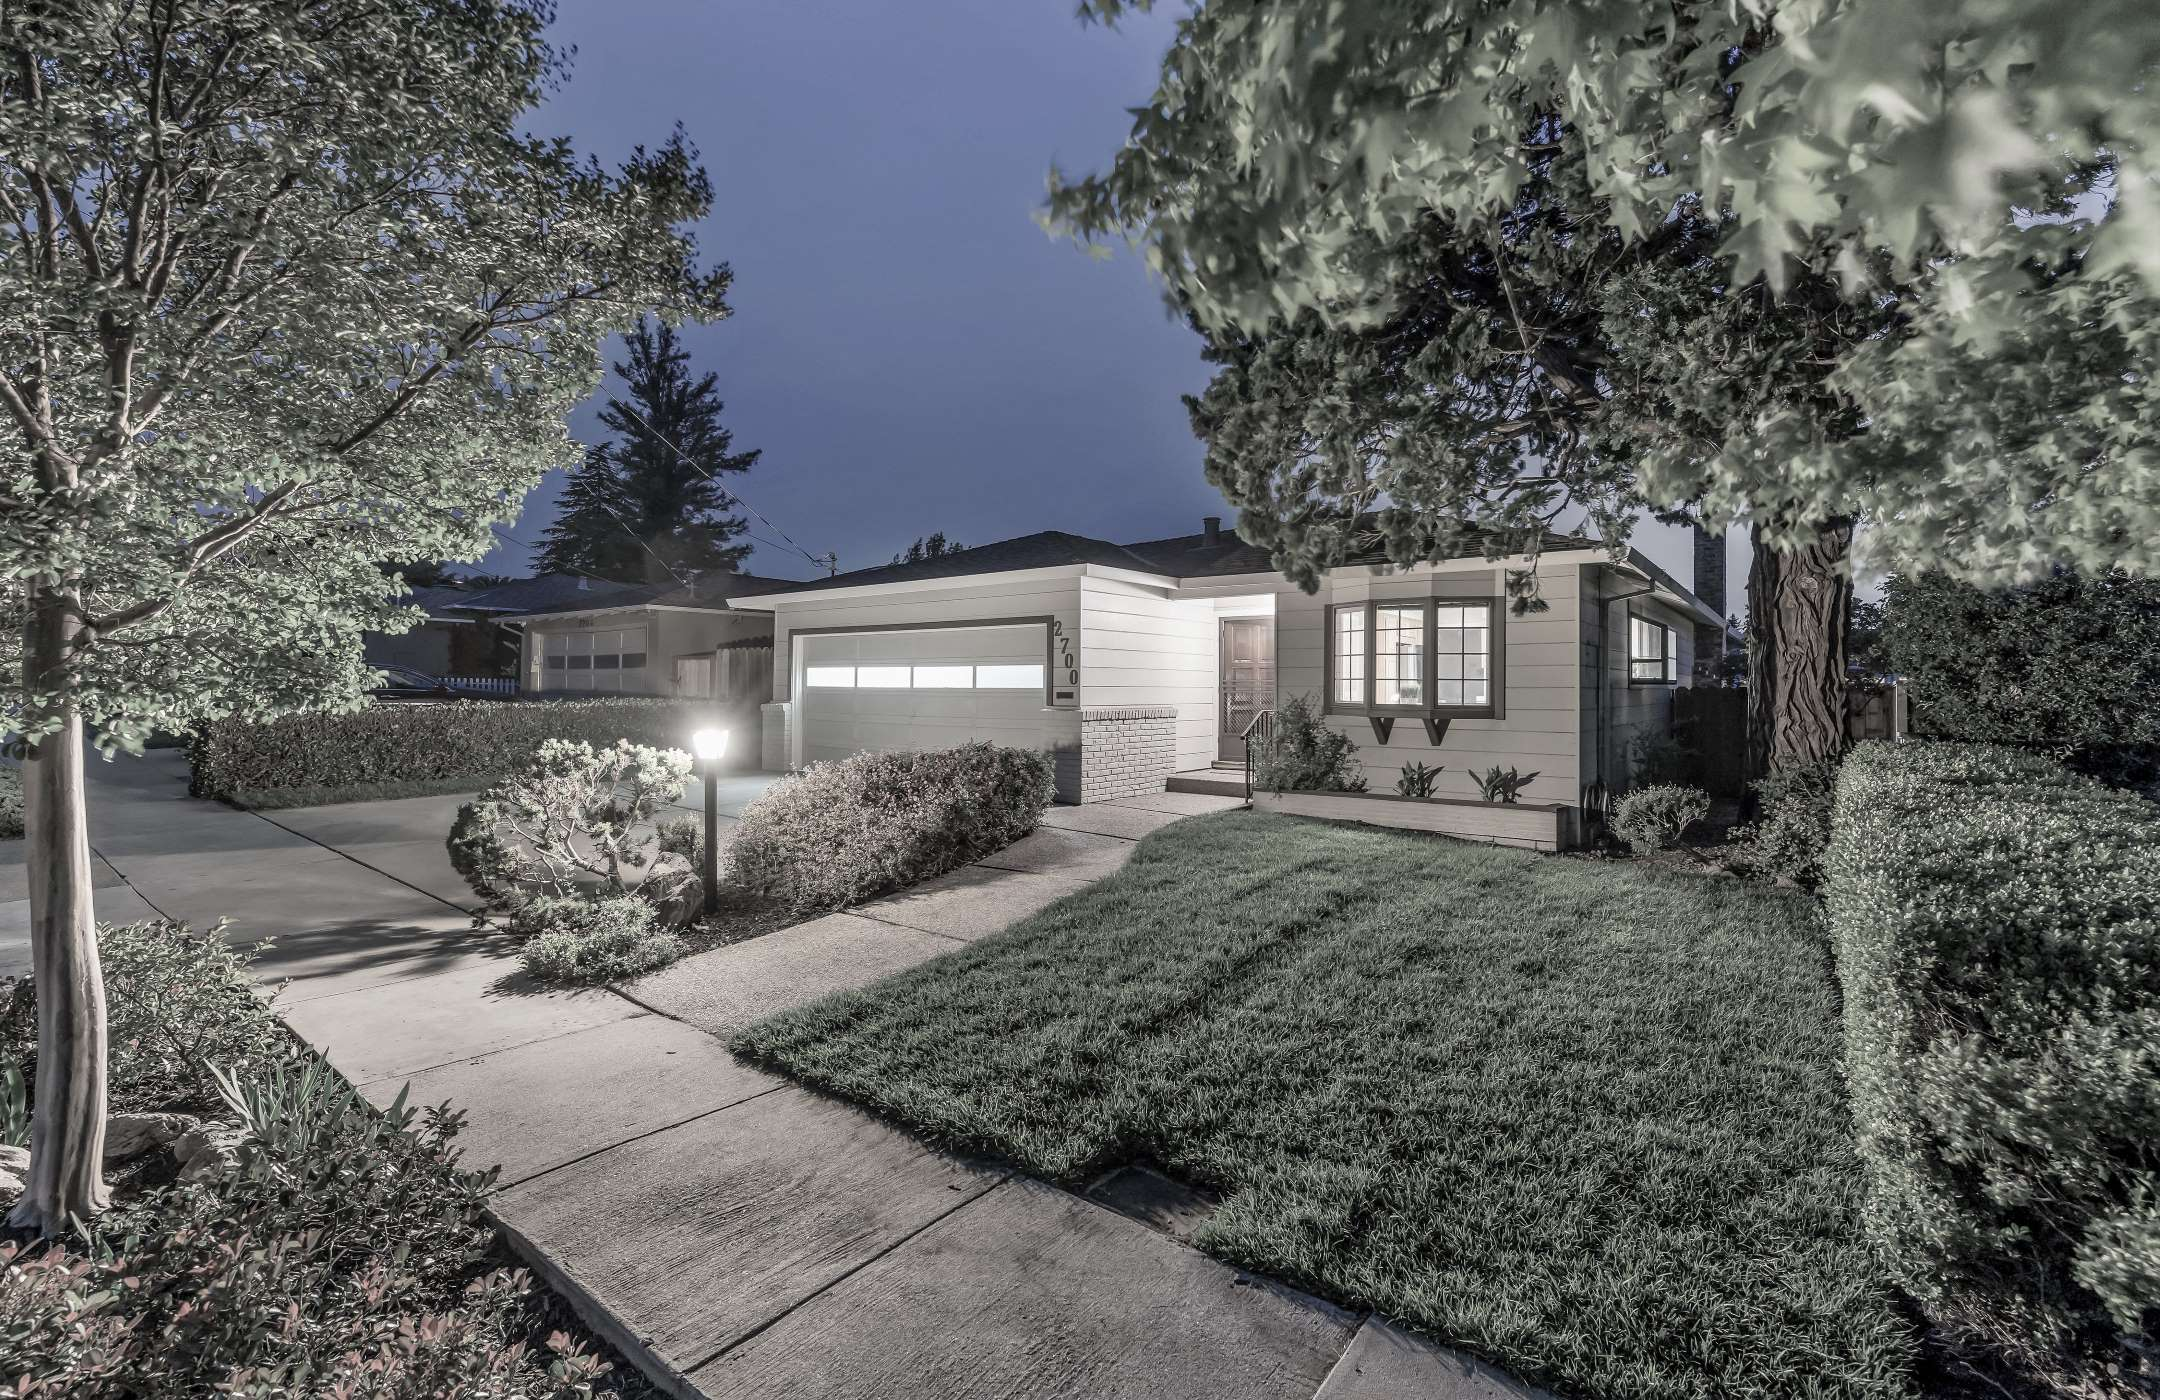 [Our Properties: Eaton Ave in San Carlos]